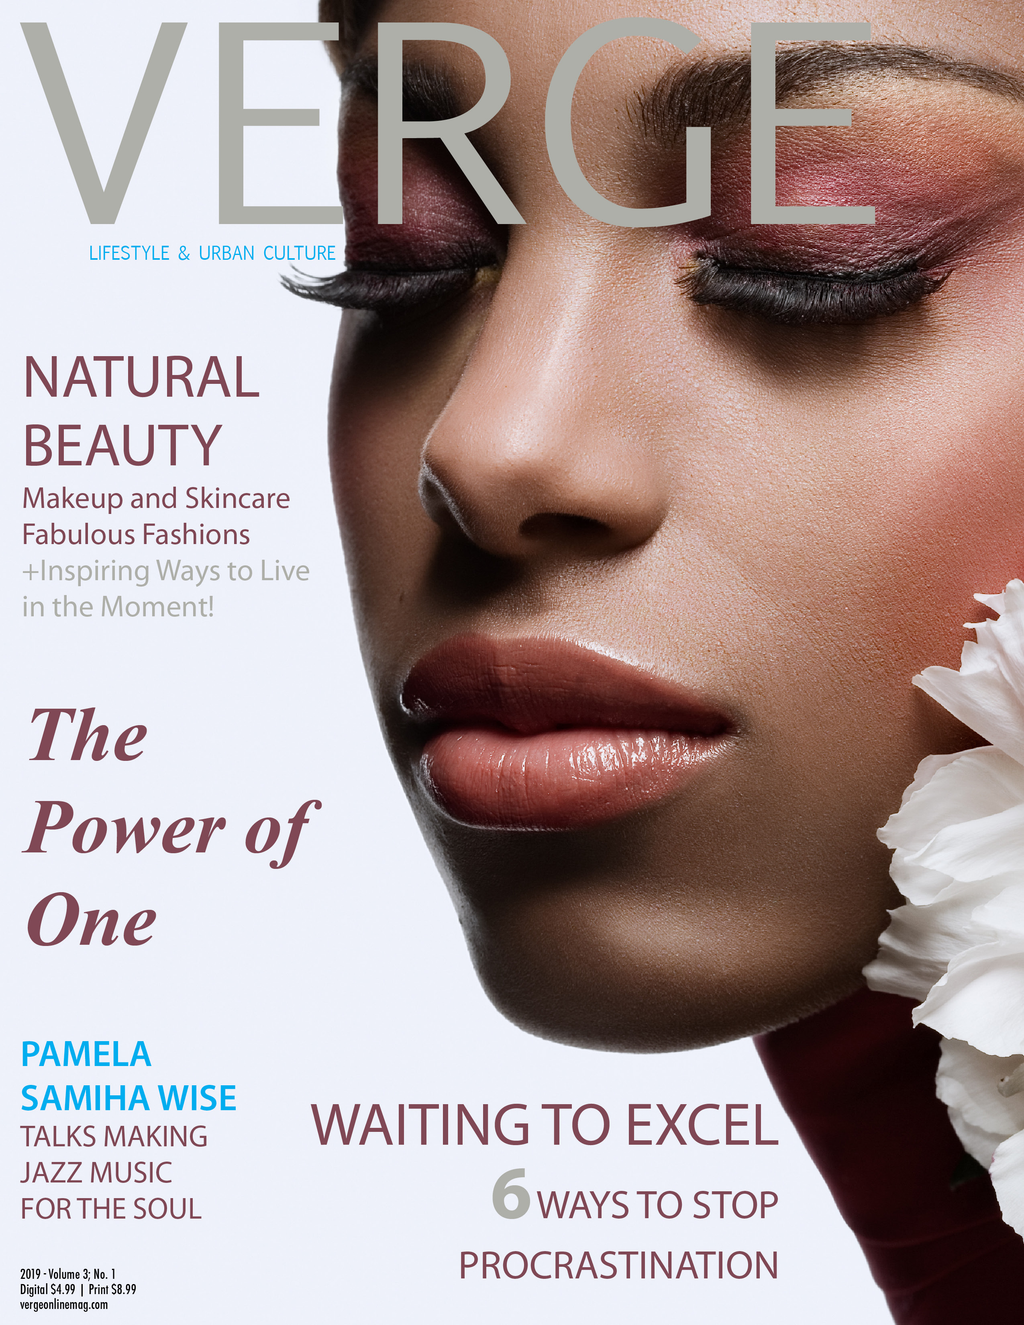 VERGE Lifestyle & Urban Culture Magazine - Magazine - VERGE 2019 - Issue 1 (Digital)